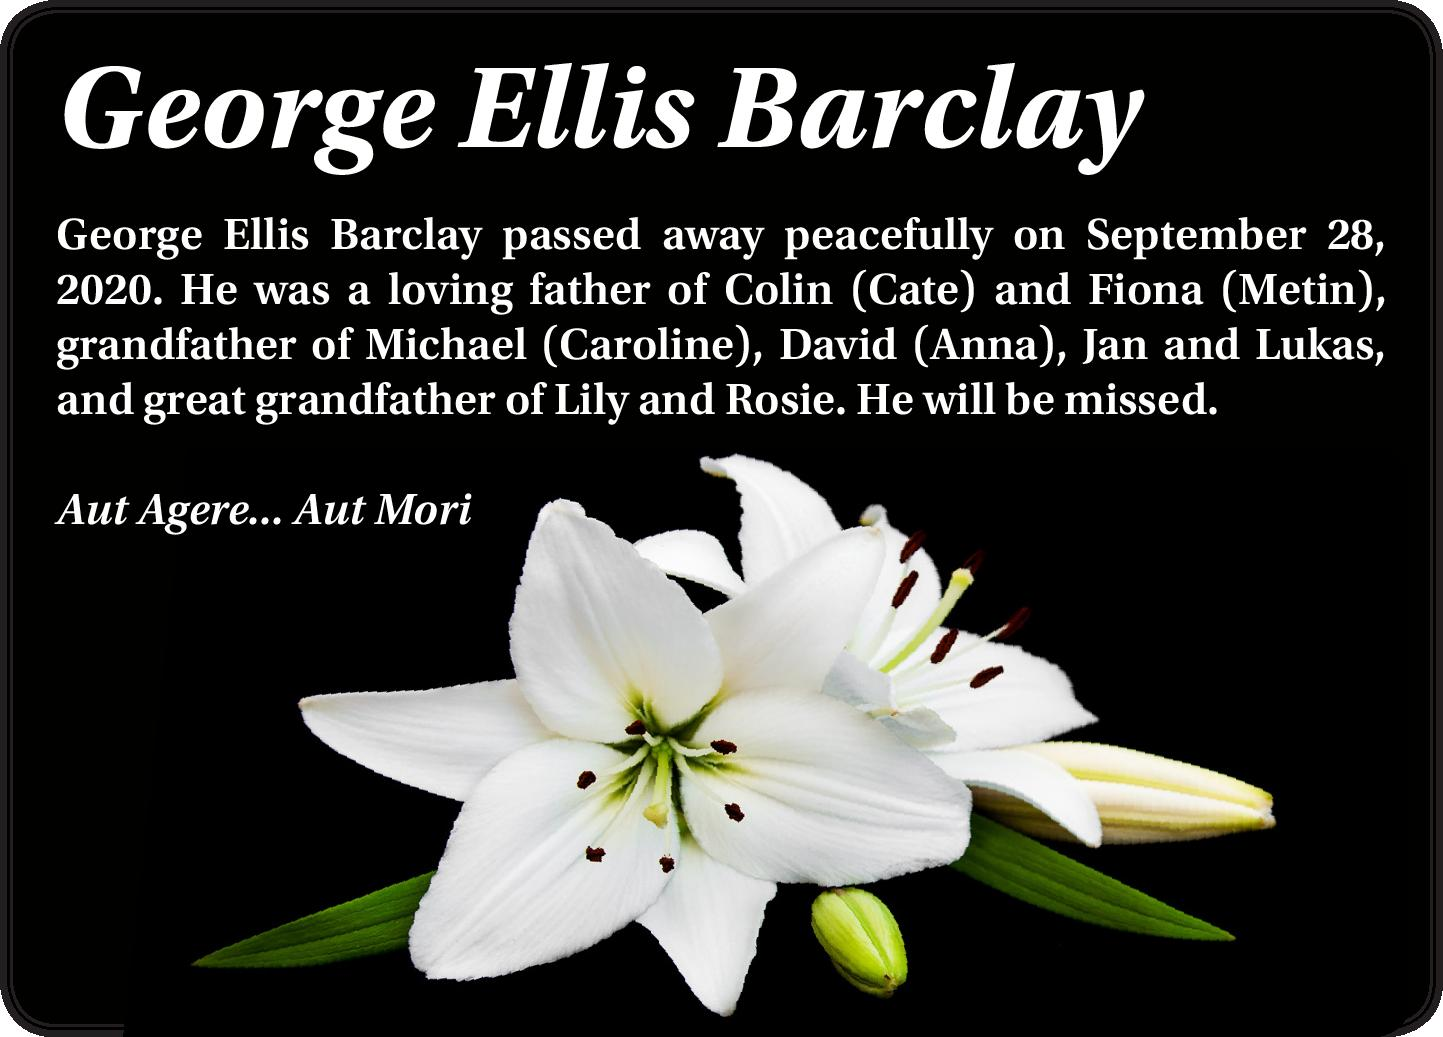 George Ellis Barclay